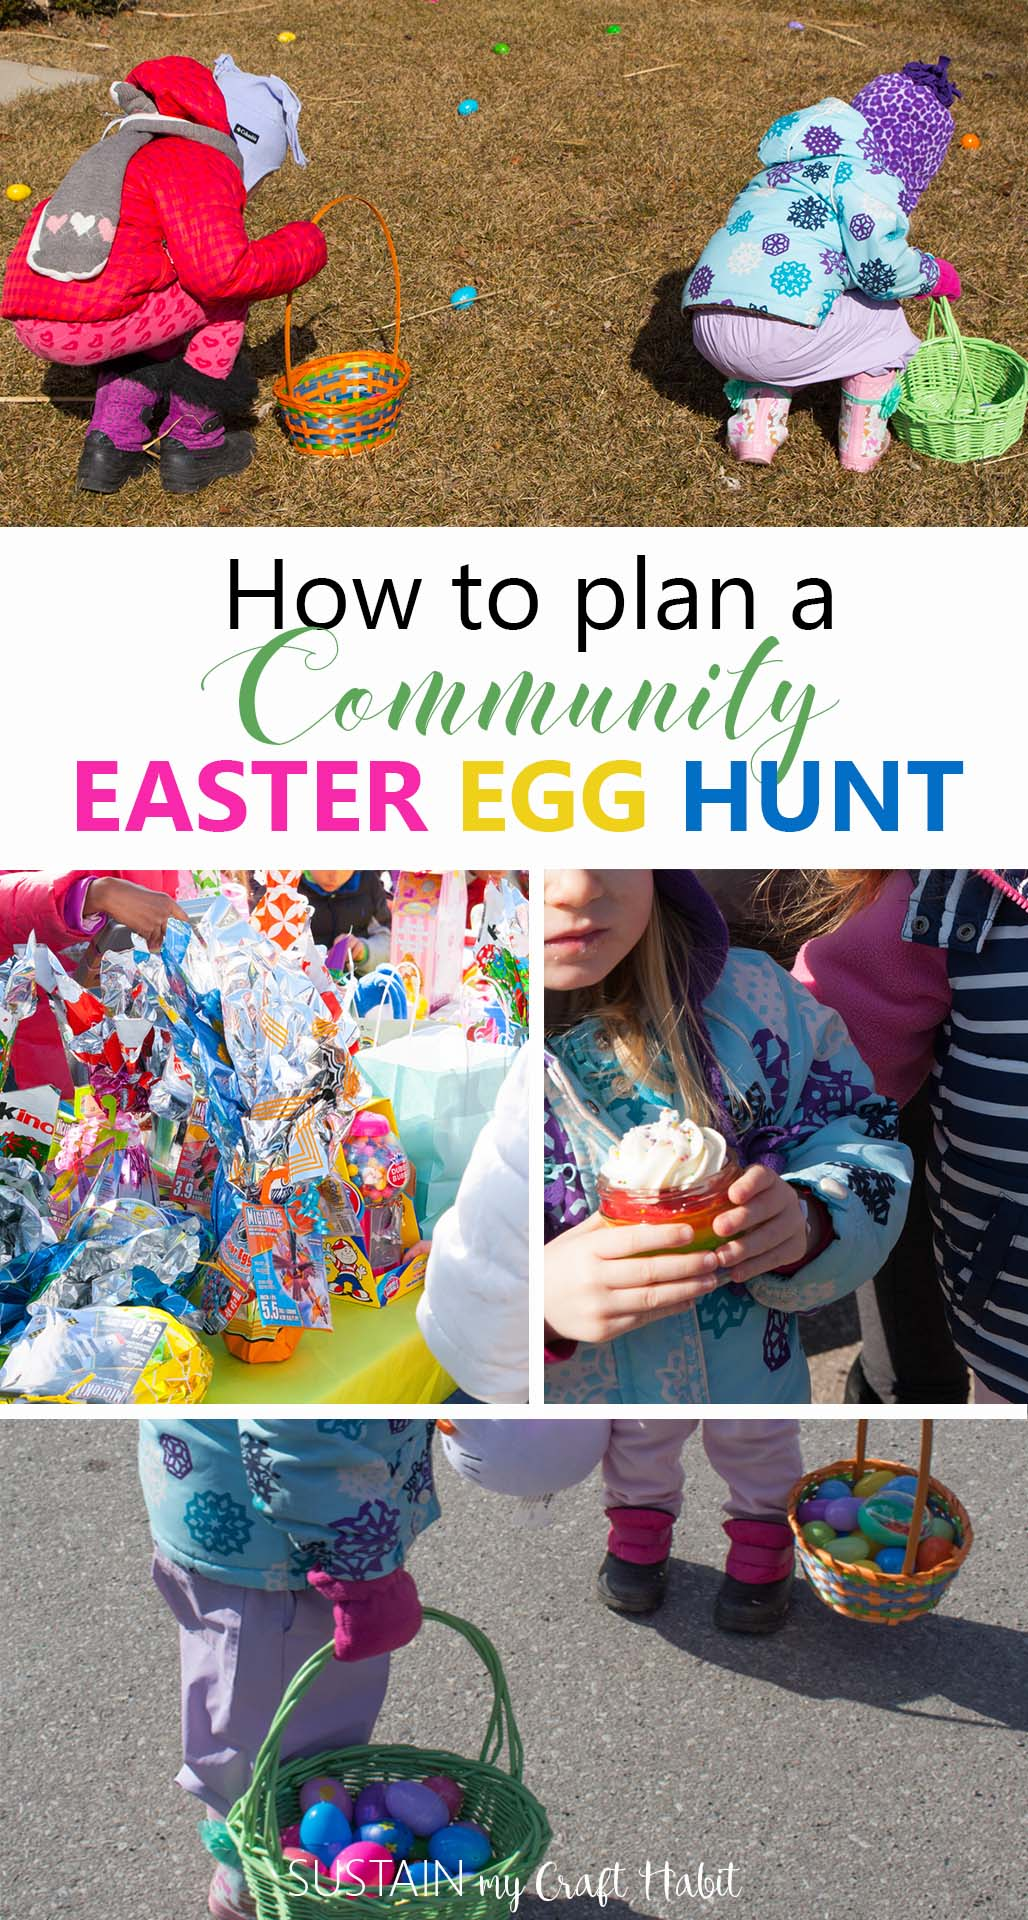 how to plan a community event